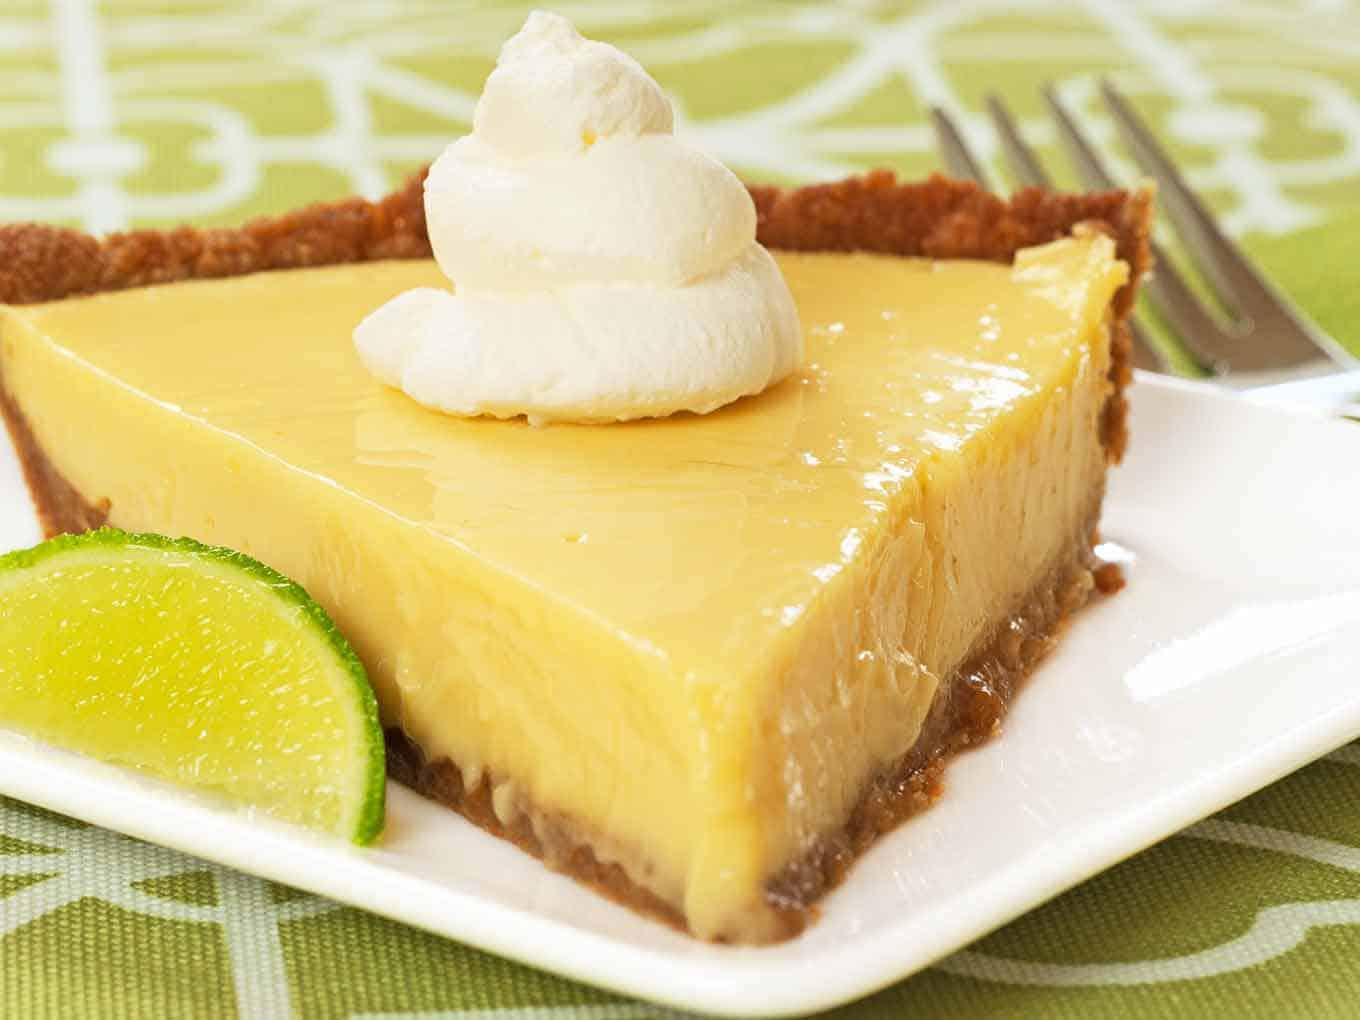 A serving of key lime pie topped with whipped cream and garnished with a lime wedge.